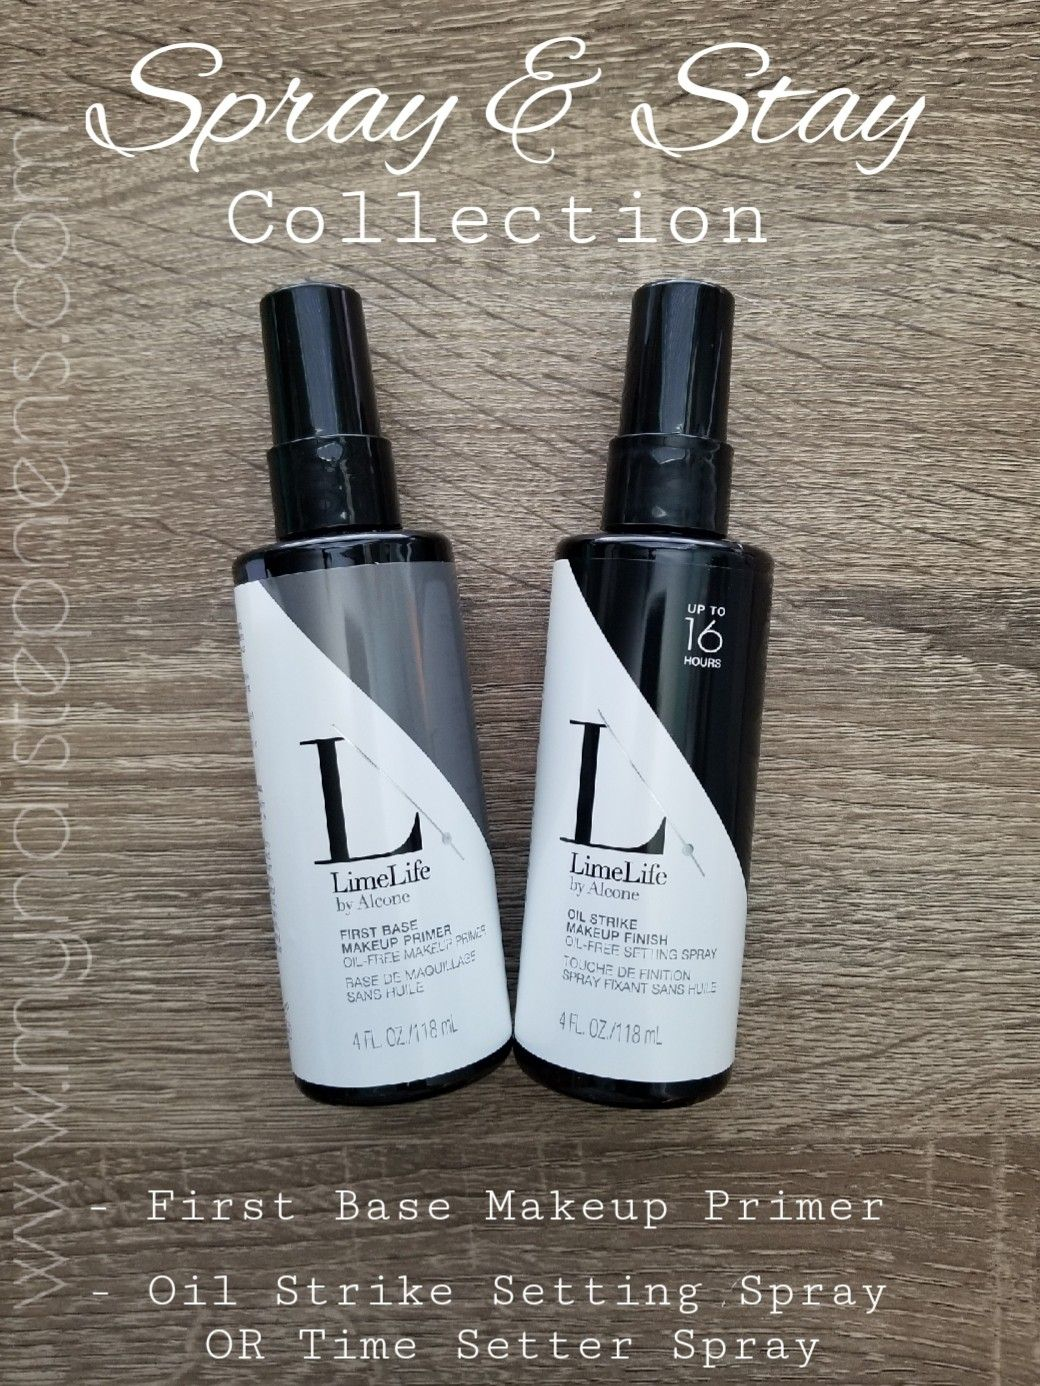 LimeLife by Alcone Spray and Stay Collection. Smooth fine